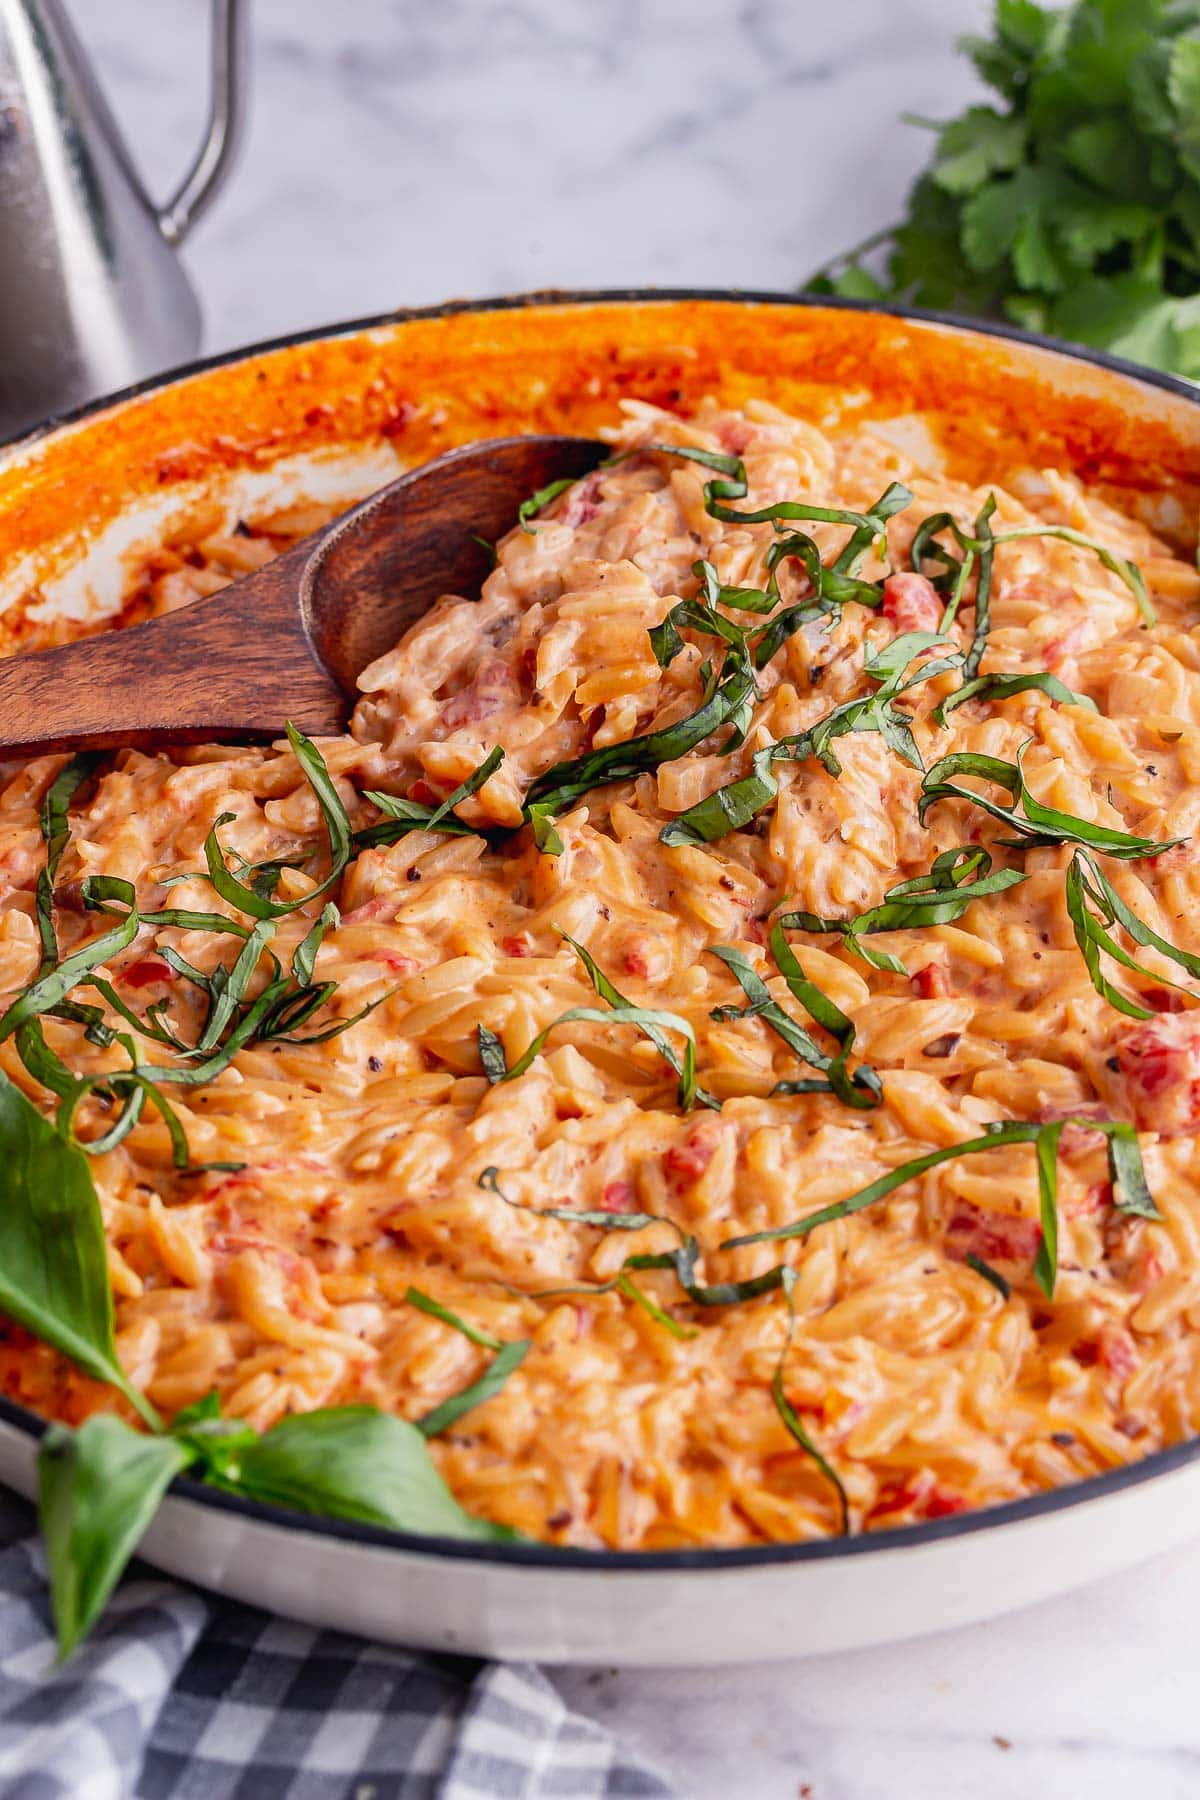 White pot of orzo risotto with a wooden spoon